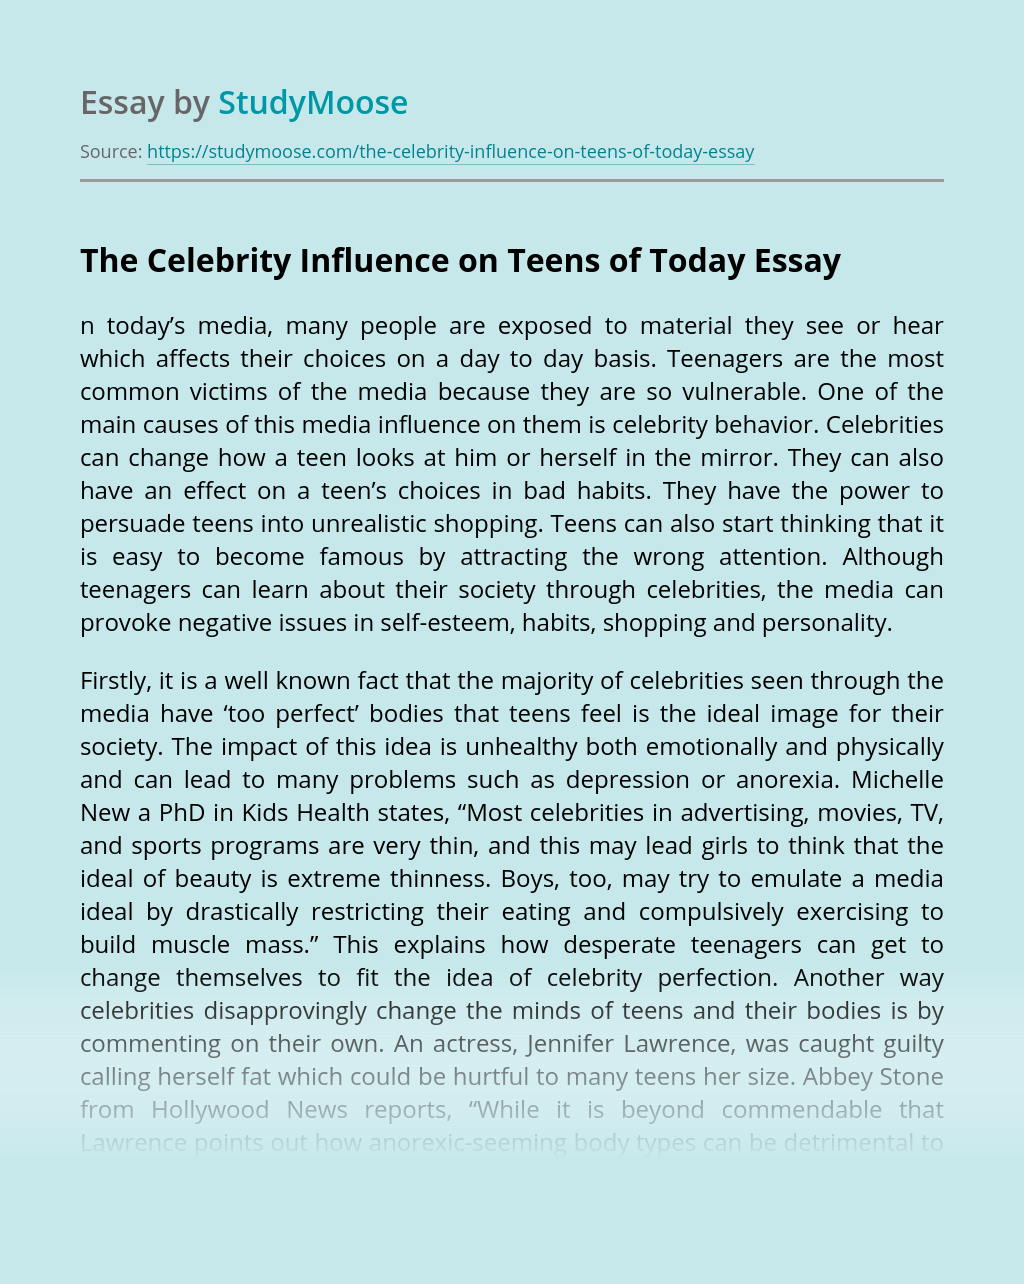 The Celebrity Influence on Teens of Today